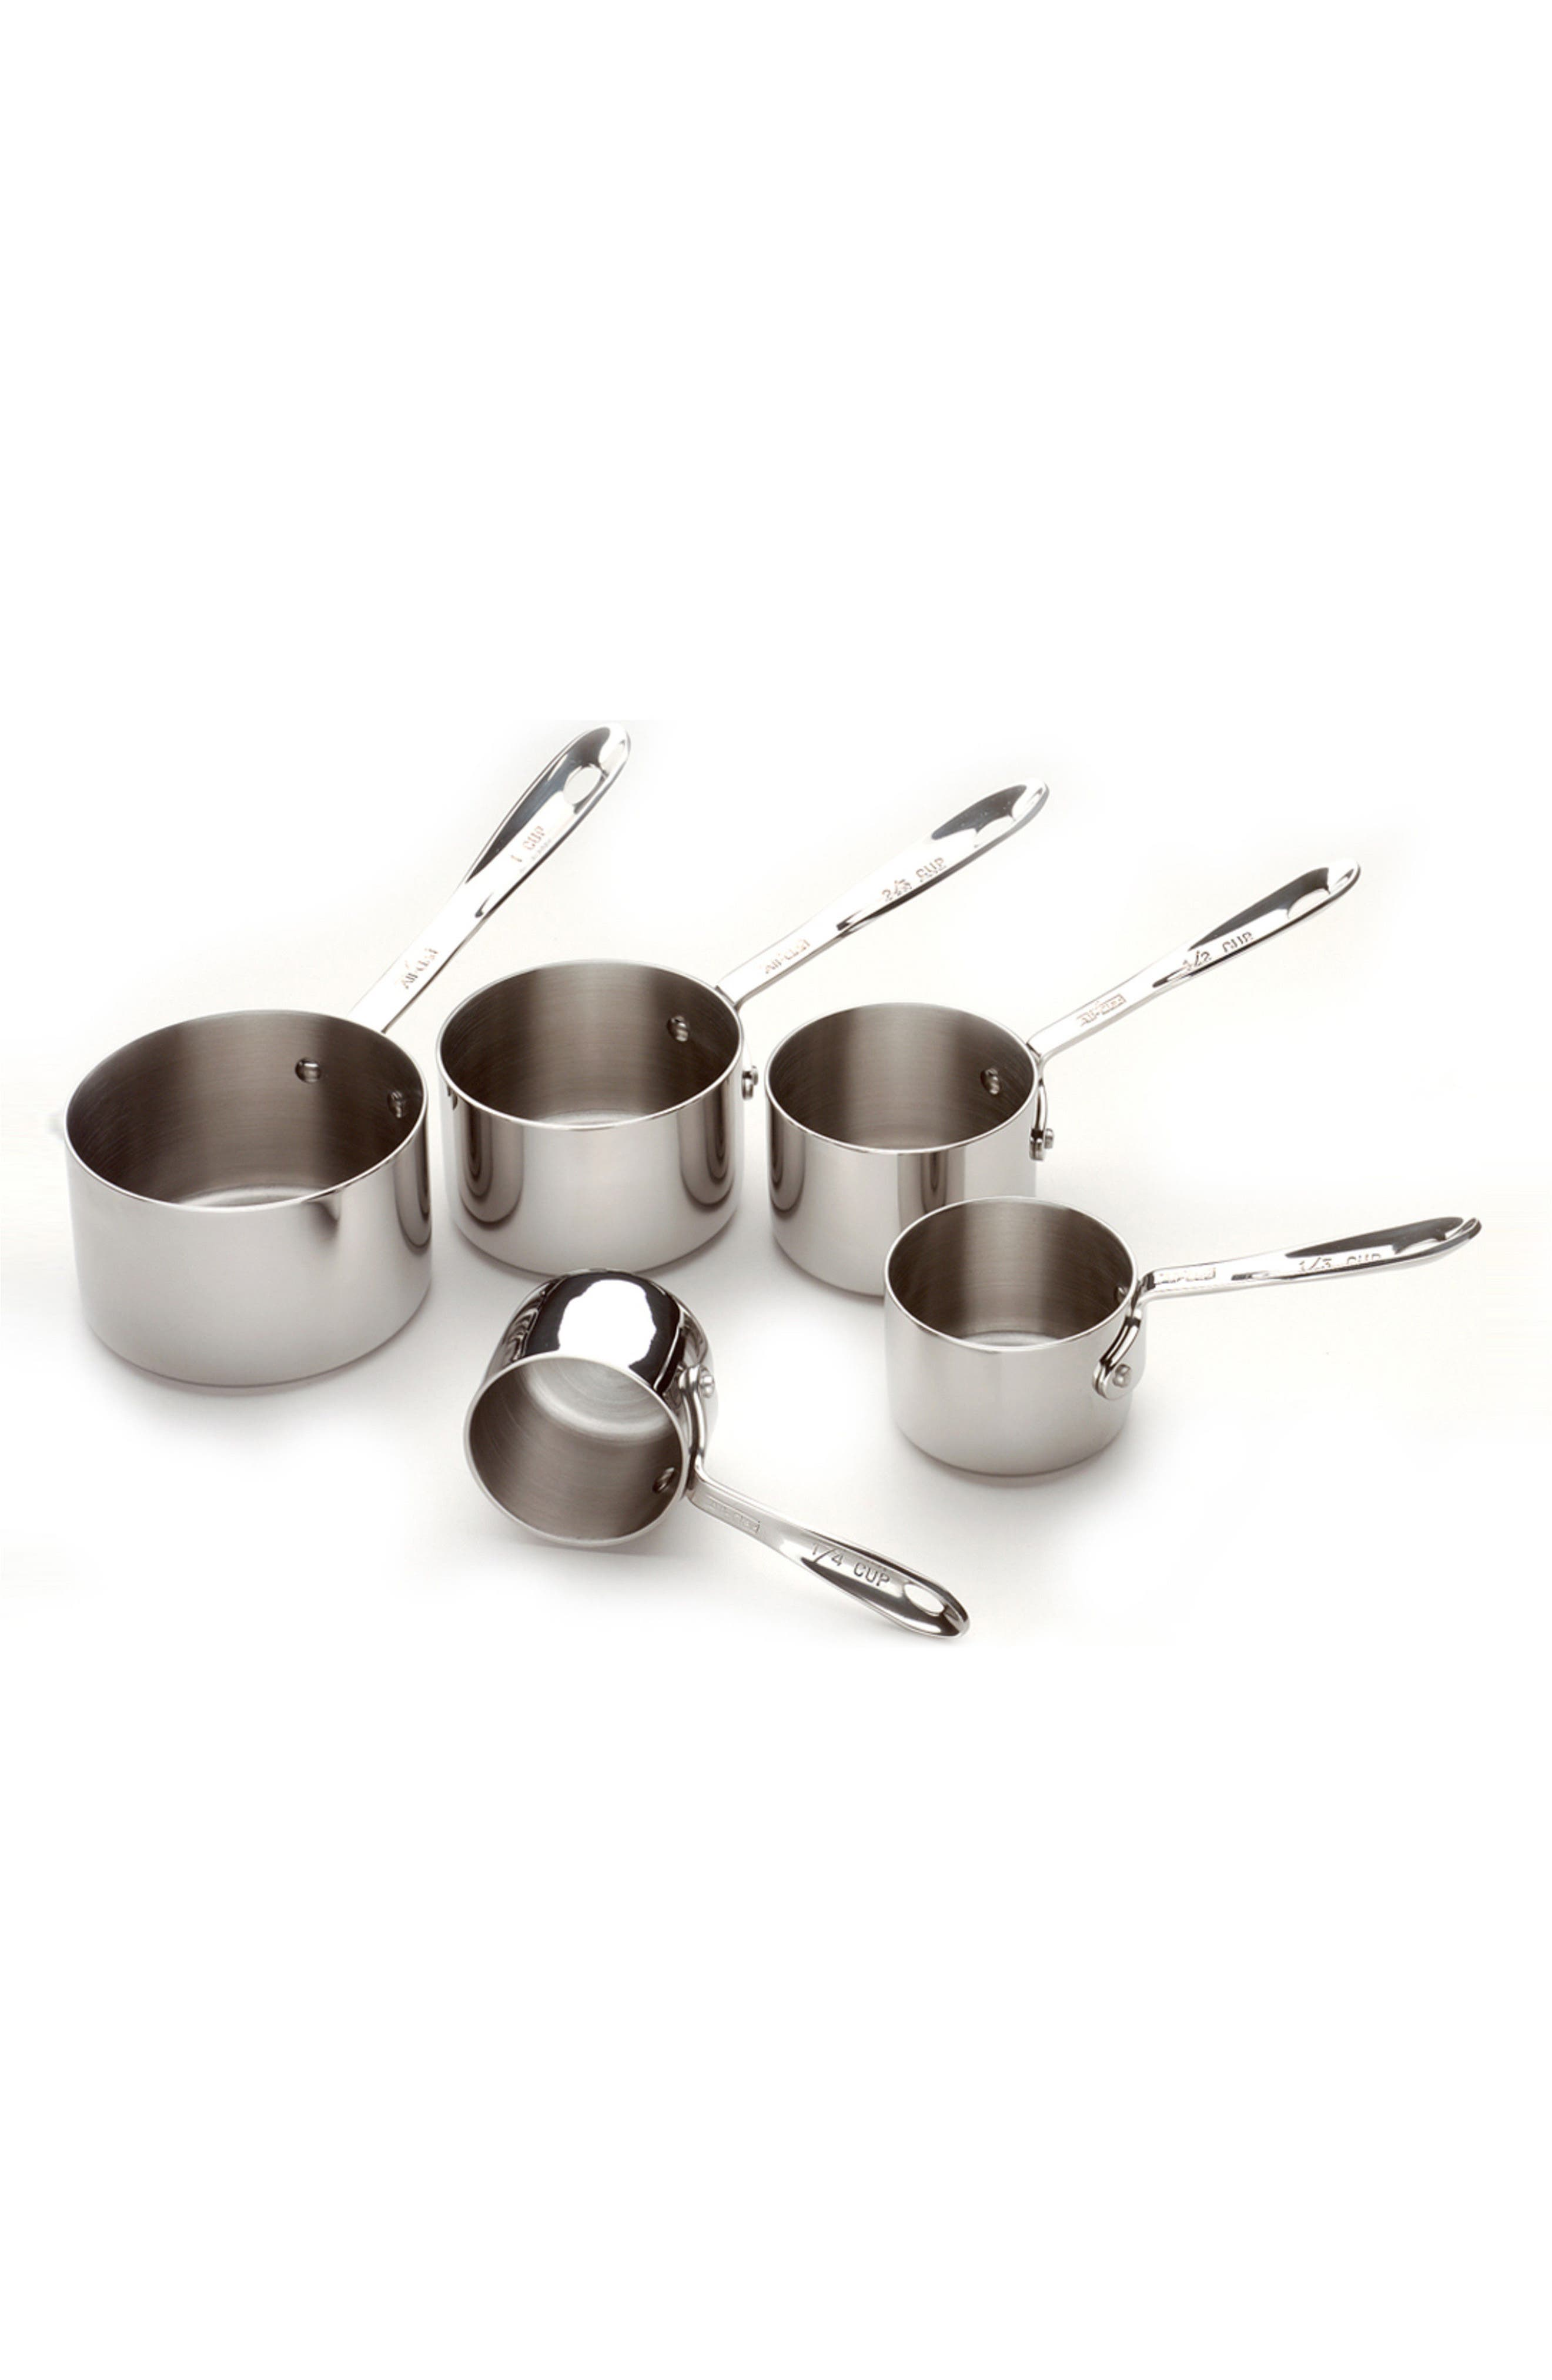 All-Clad 5-Piece Stainless Steel Measuring Cup Set